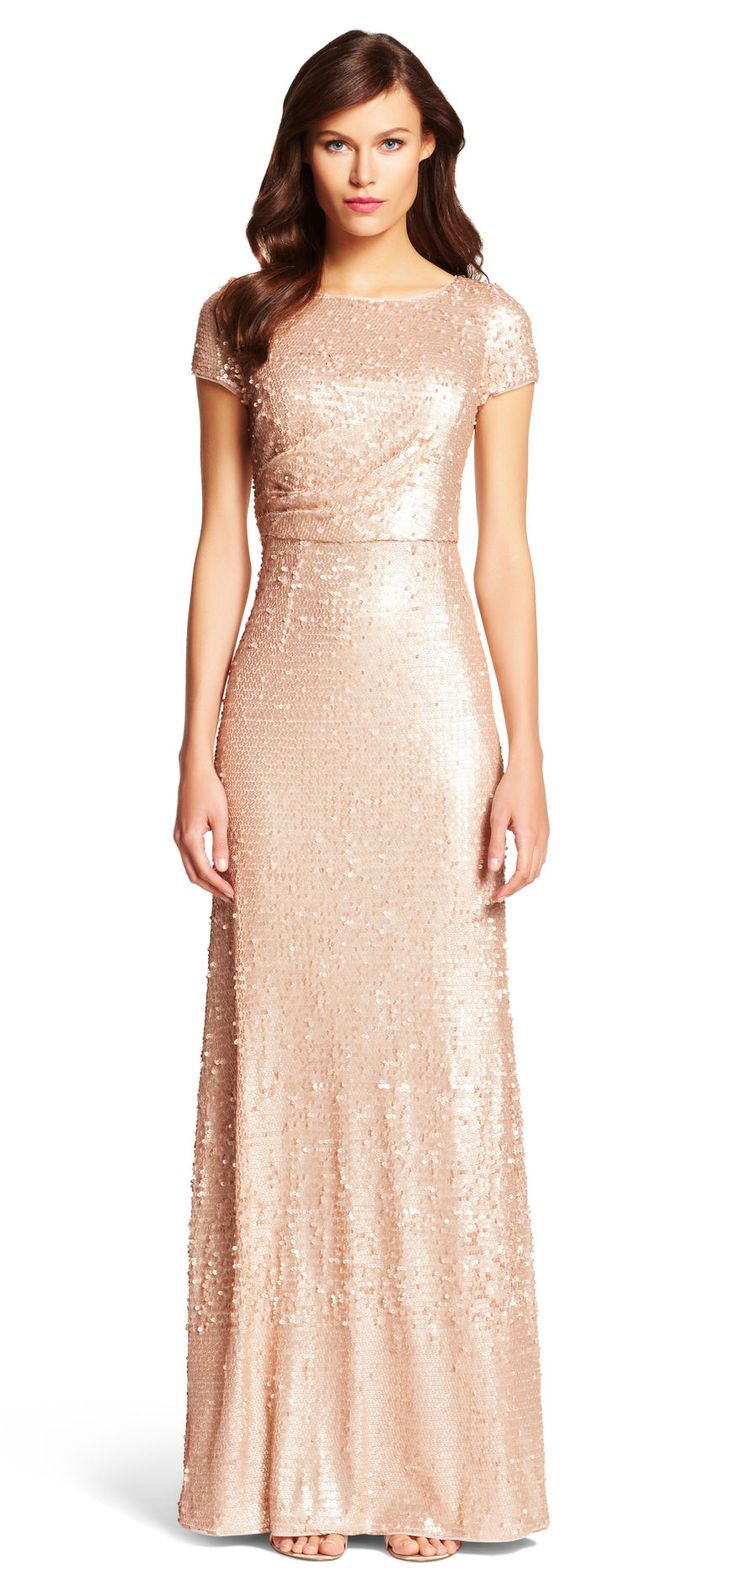 Short Sleeve Sequin Gown - Adrianna Papell